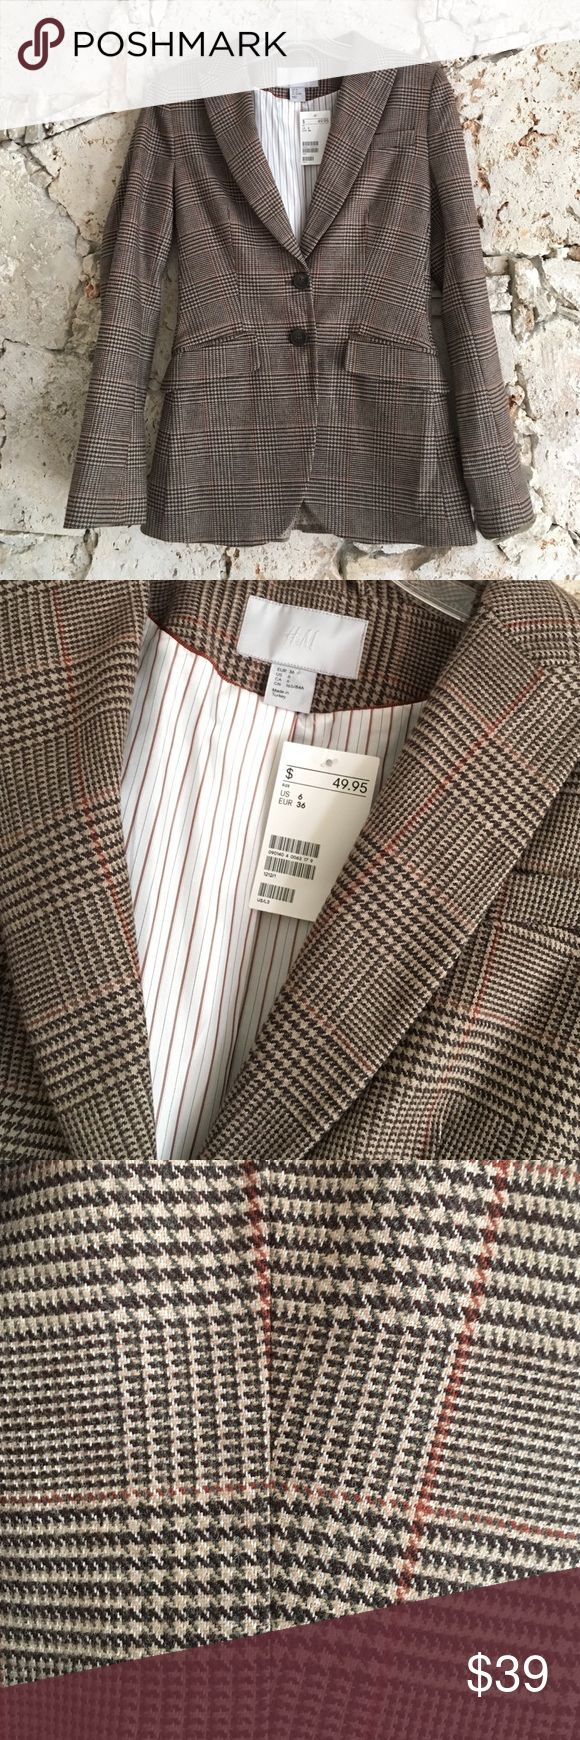 NWT H&M Blazer Houndstooth Brown Plaid Fitted 6 NWT H&M blazer, houndstooth/plaid shell, striped & polka dot lining, fully lined, notch collar, front darts, 2 front pockets with flaps, 2 tortoise shell buttons, lightly padded shoulders, long sleeves, back princess lines & vent. Wool blend, replacement buttons included, size 6, runs small. New with tags, never worn. H&M Jackets & Coats Blazers